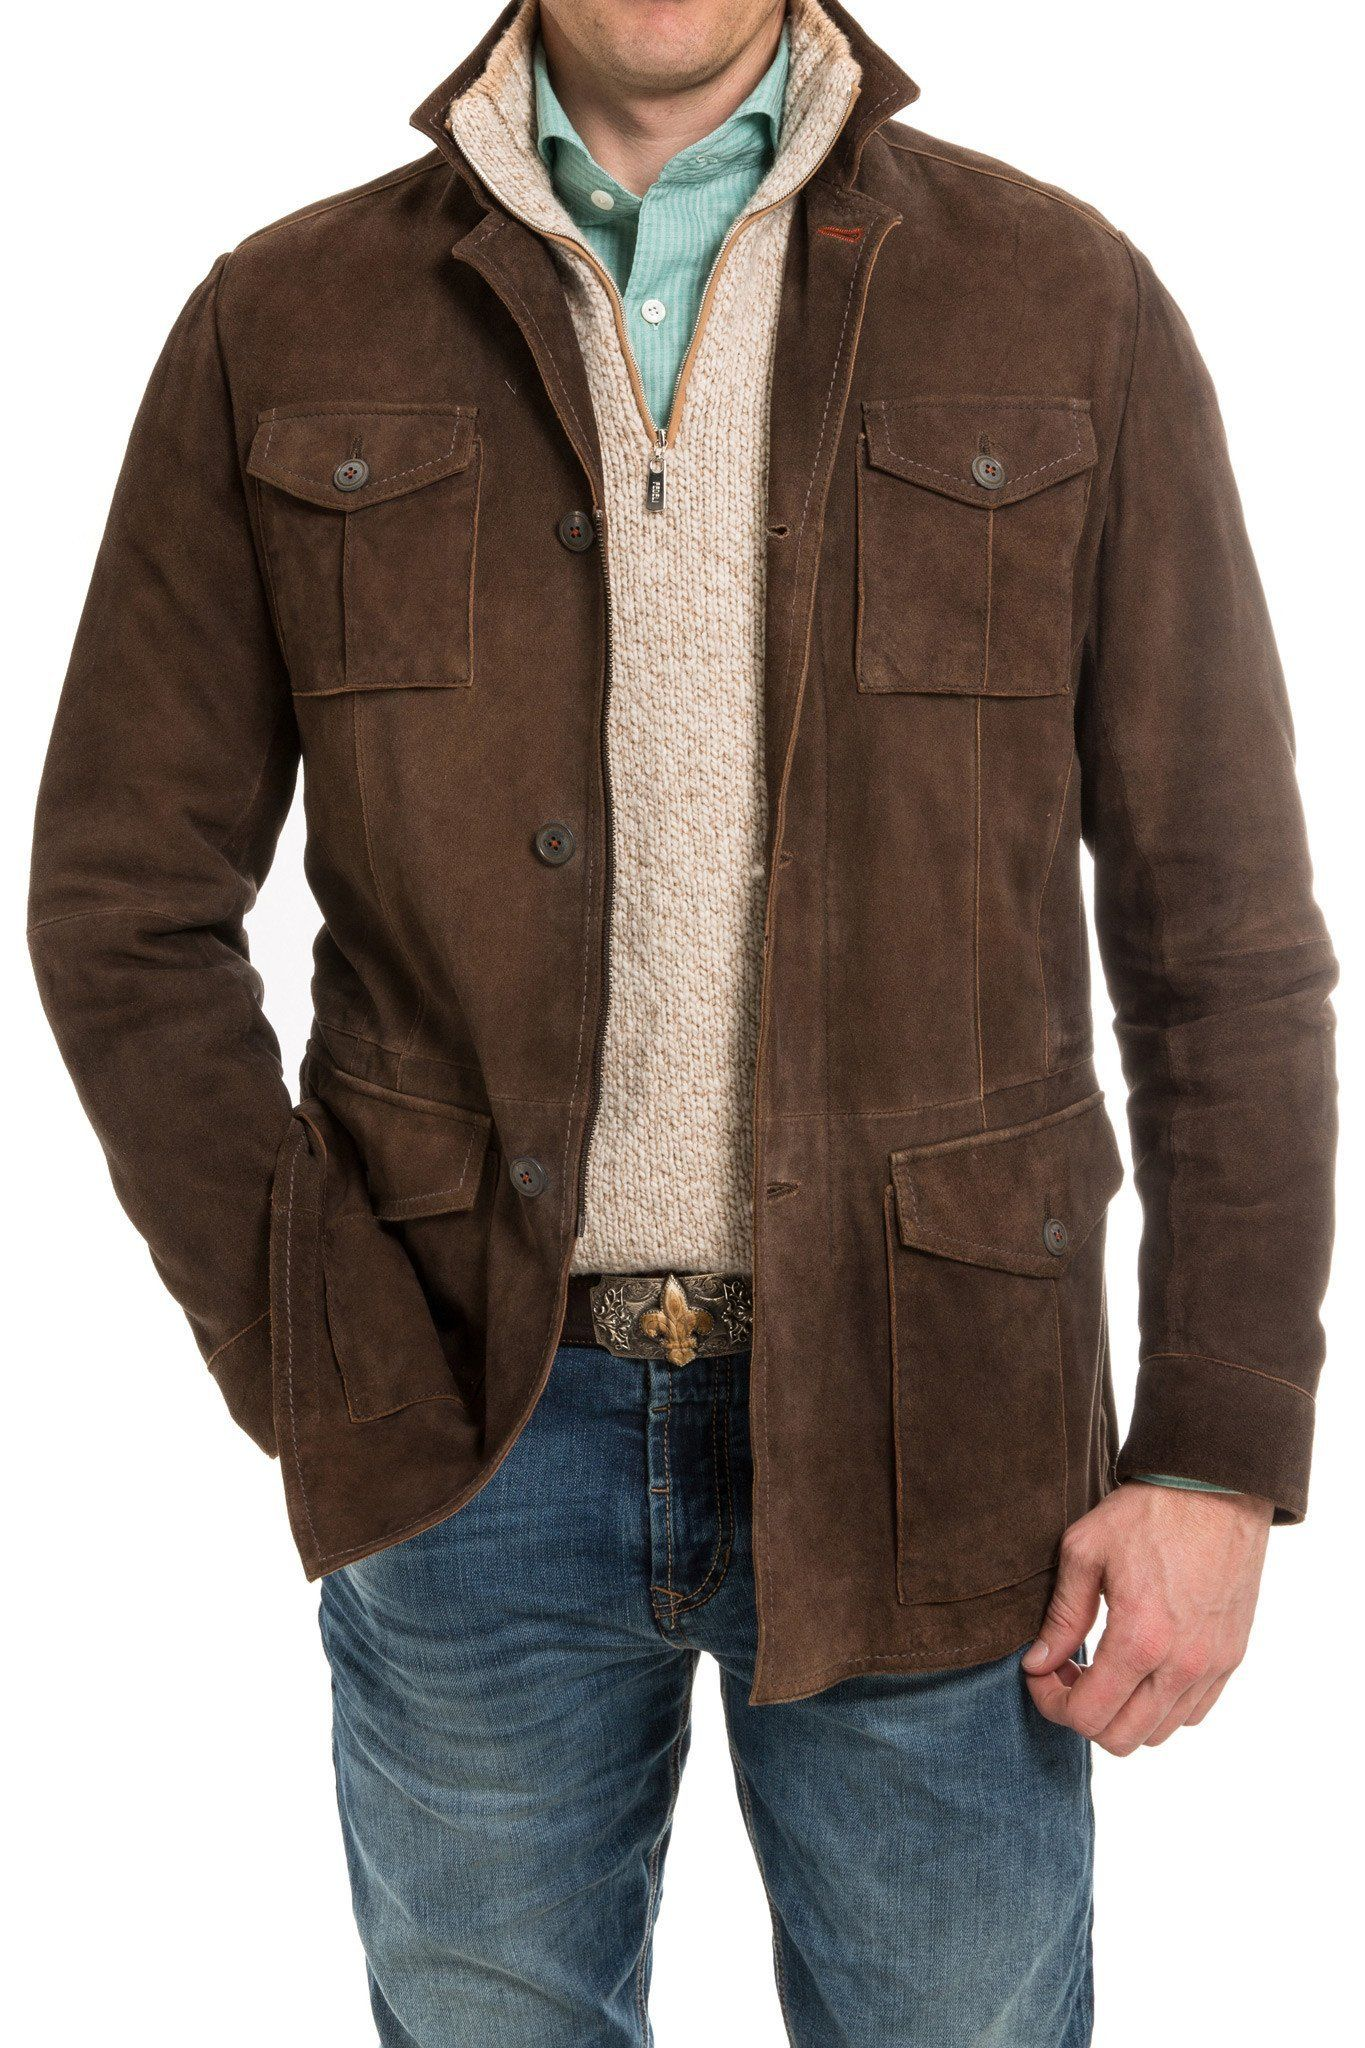 Gimo S Sonoma Suede Jacket In Chocolate Suede Sale Axelsoutpost